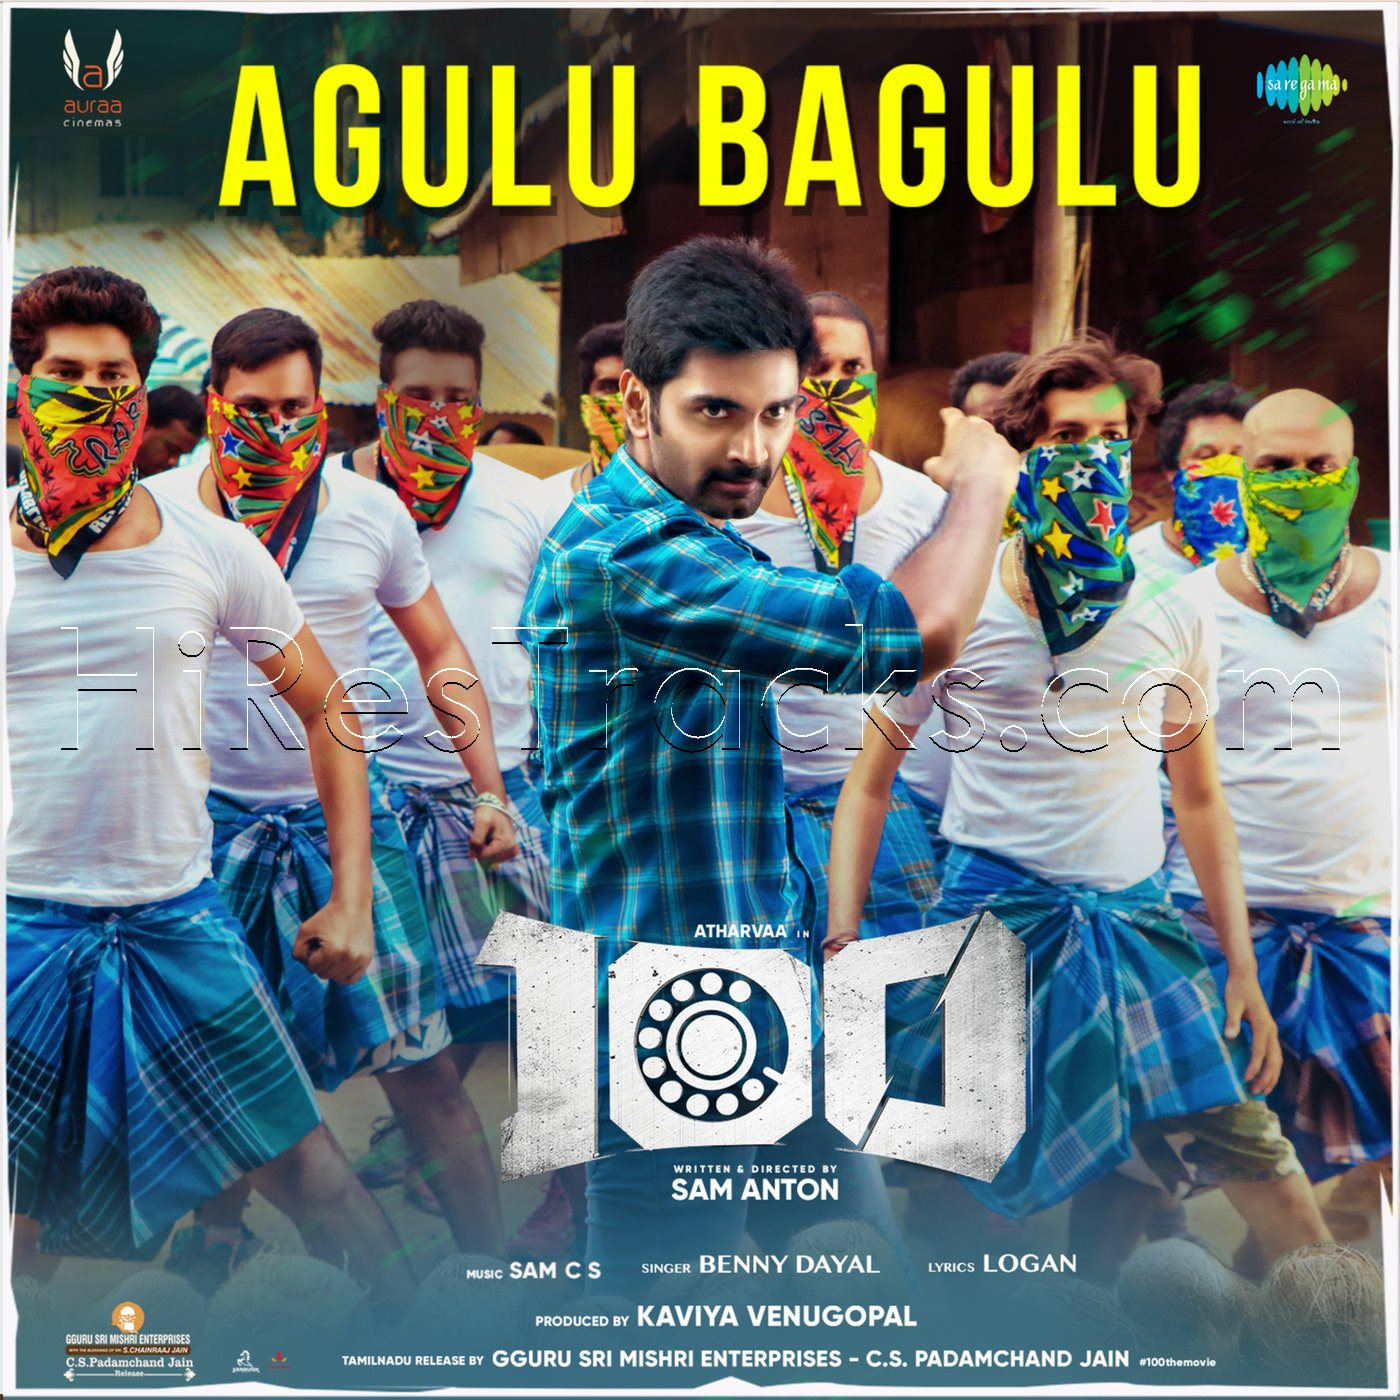 Agulu Bagulu (From 100) – Single (2019)